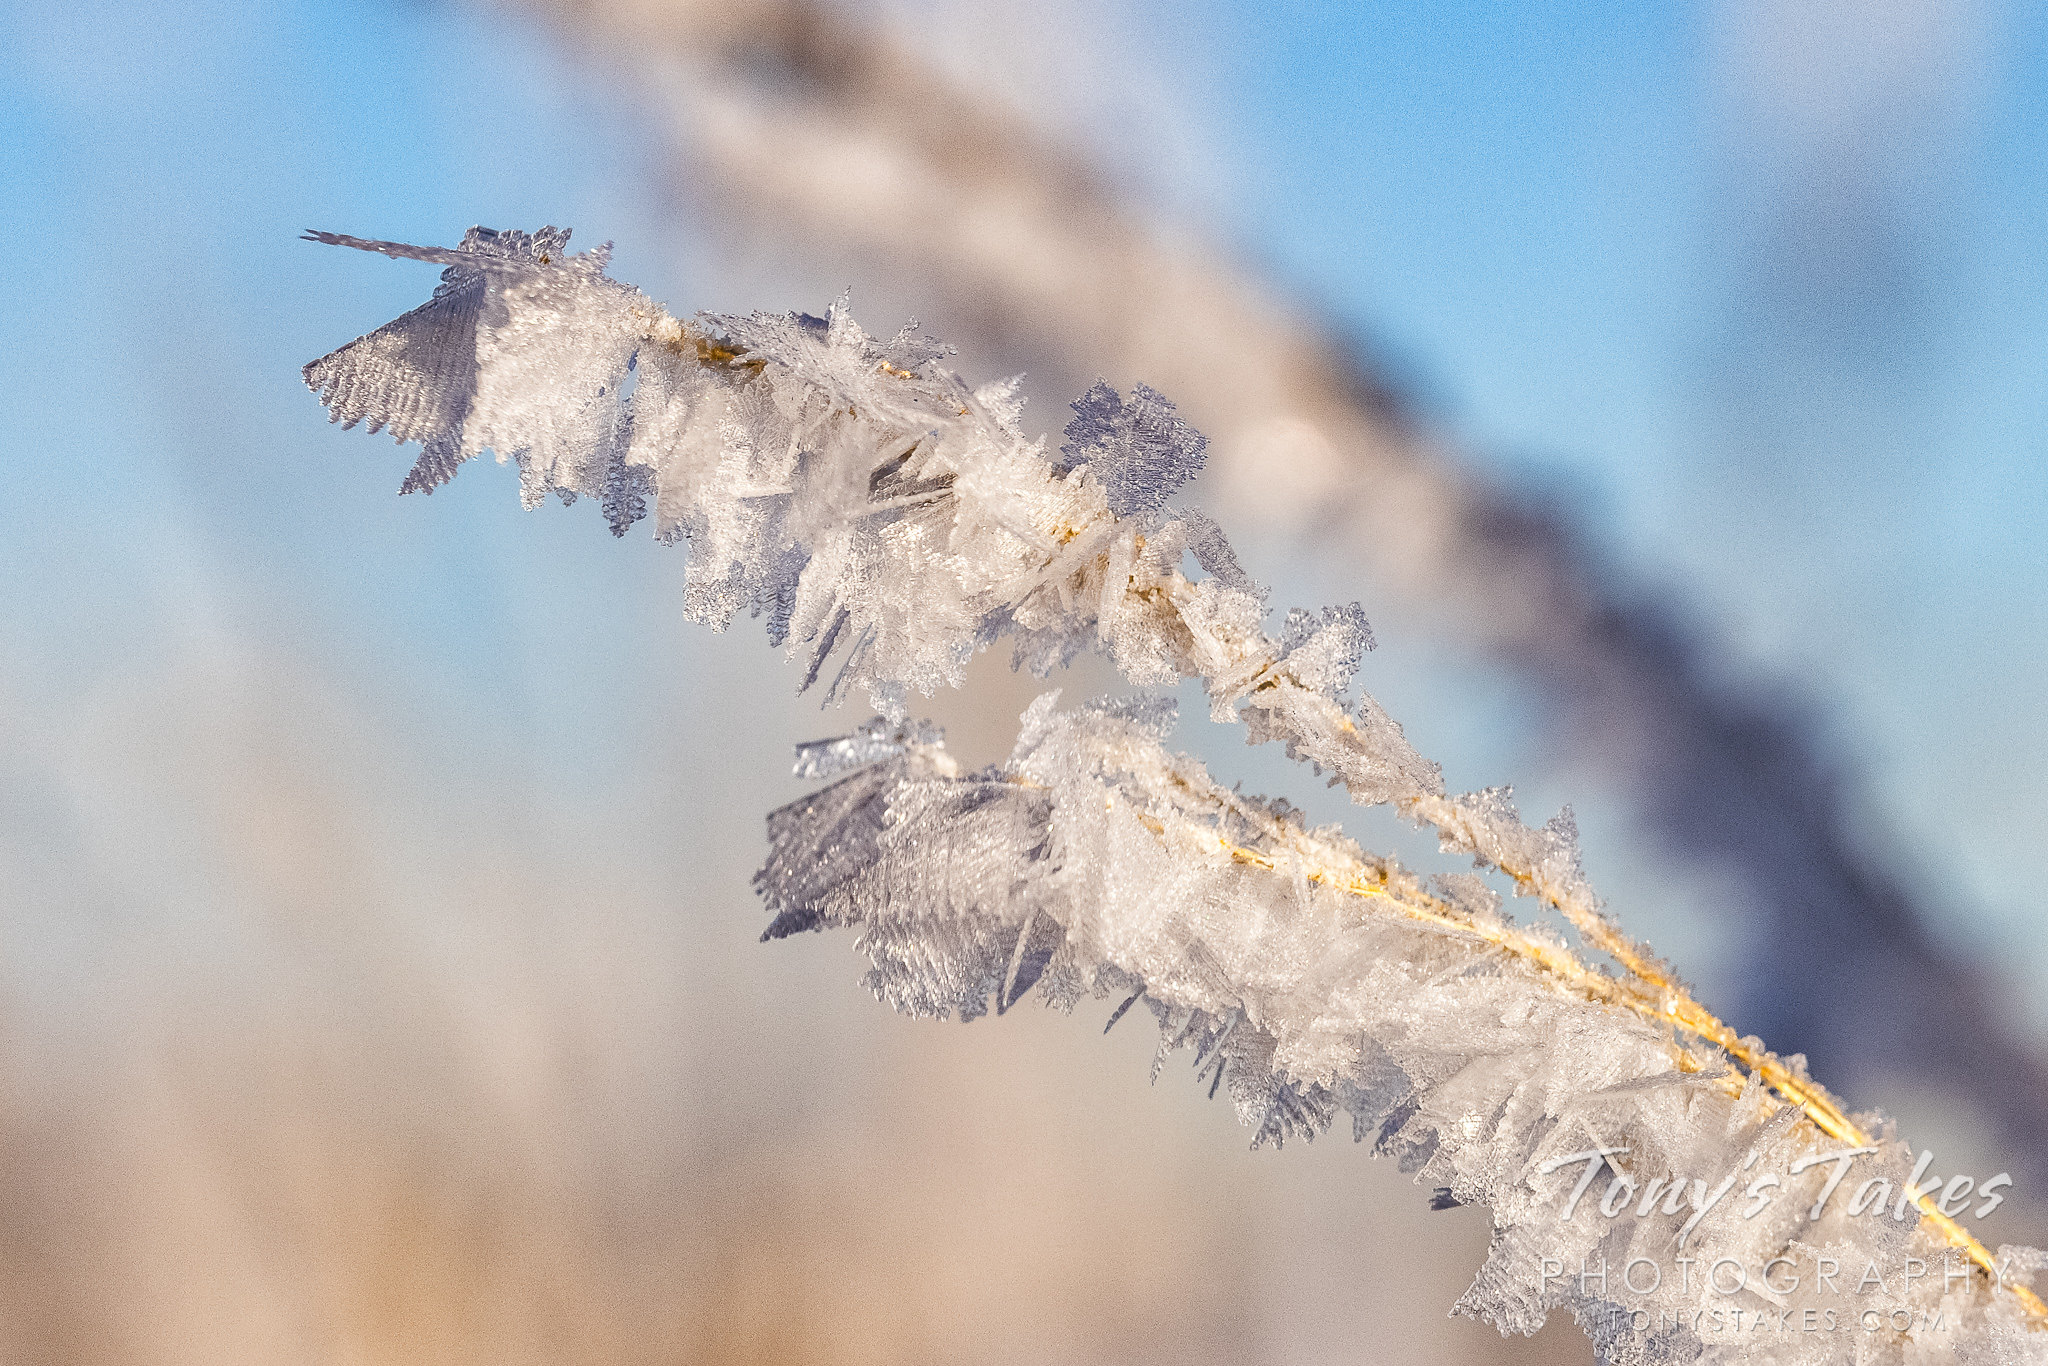 Hoar frost coats the plains